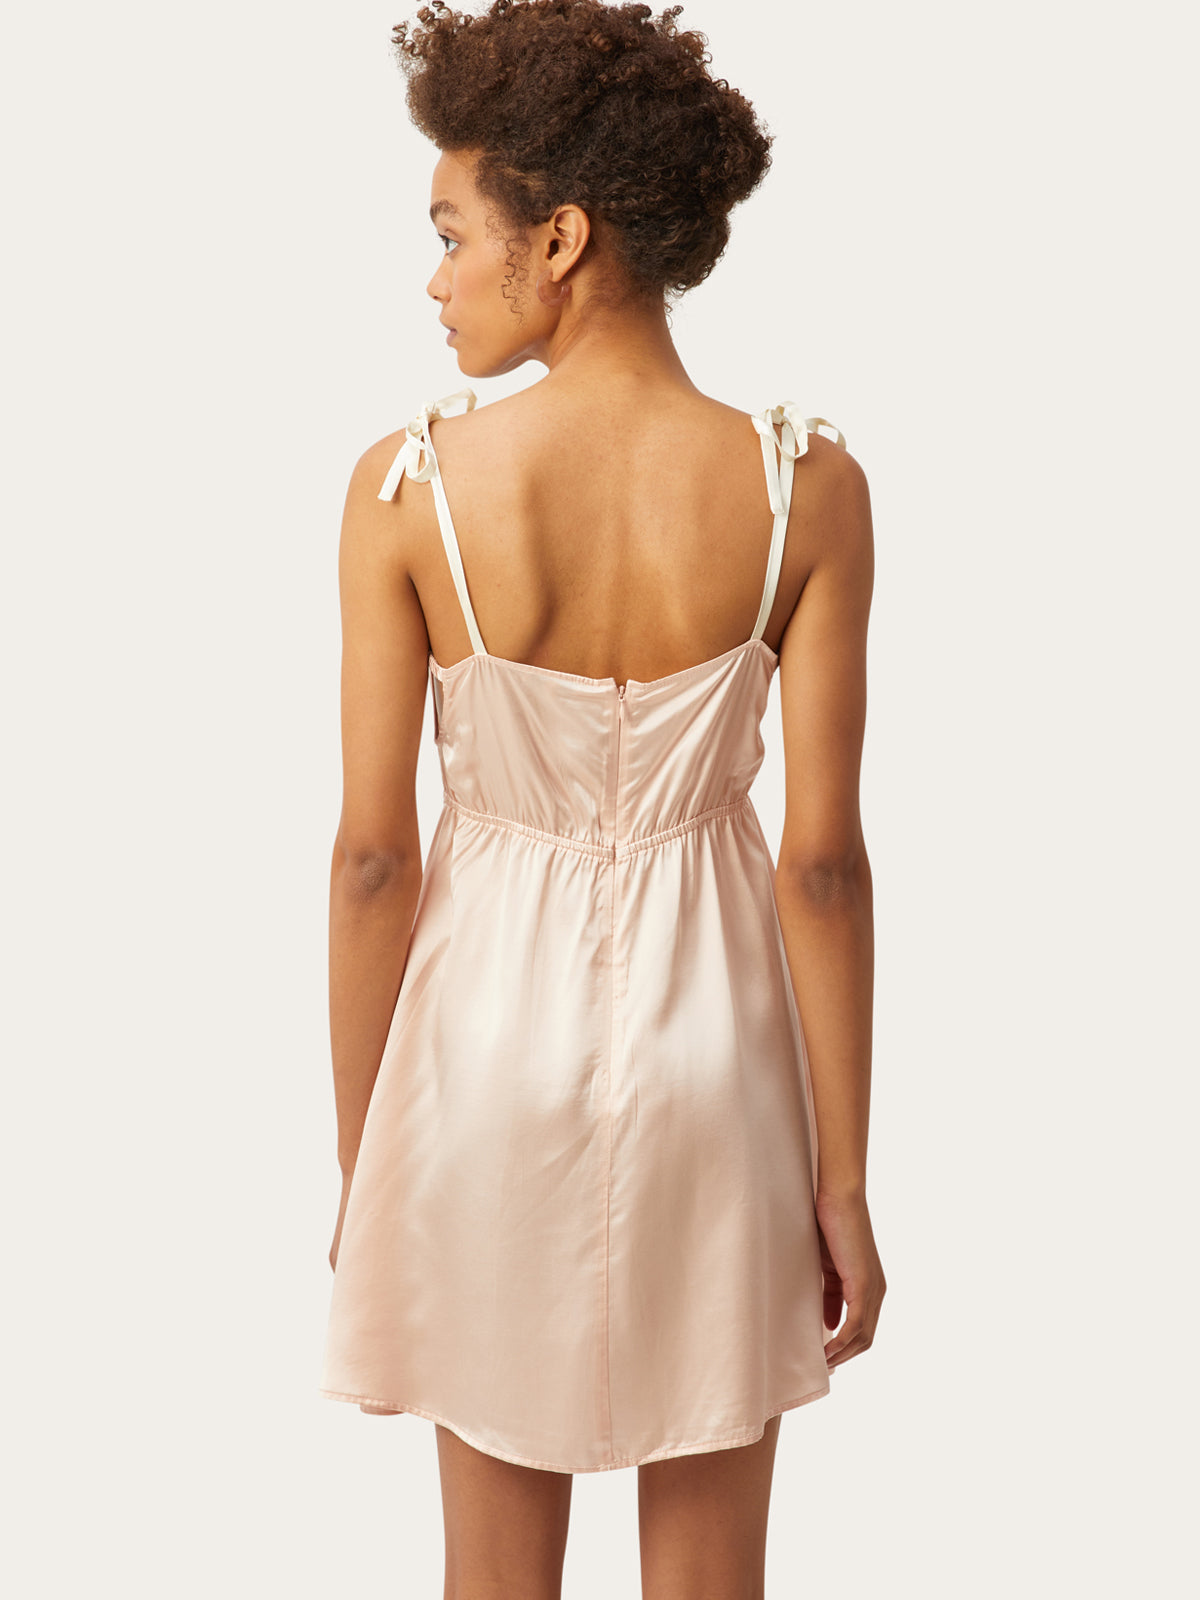 Hanna Dress in Peachy Keen By Morgan Lane